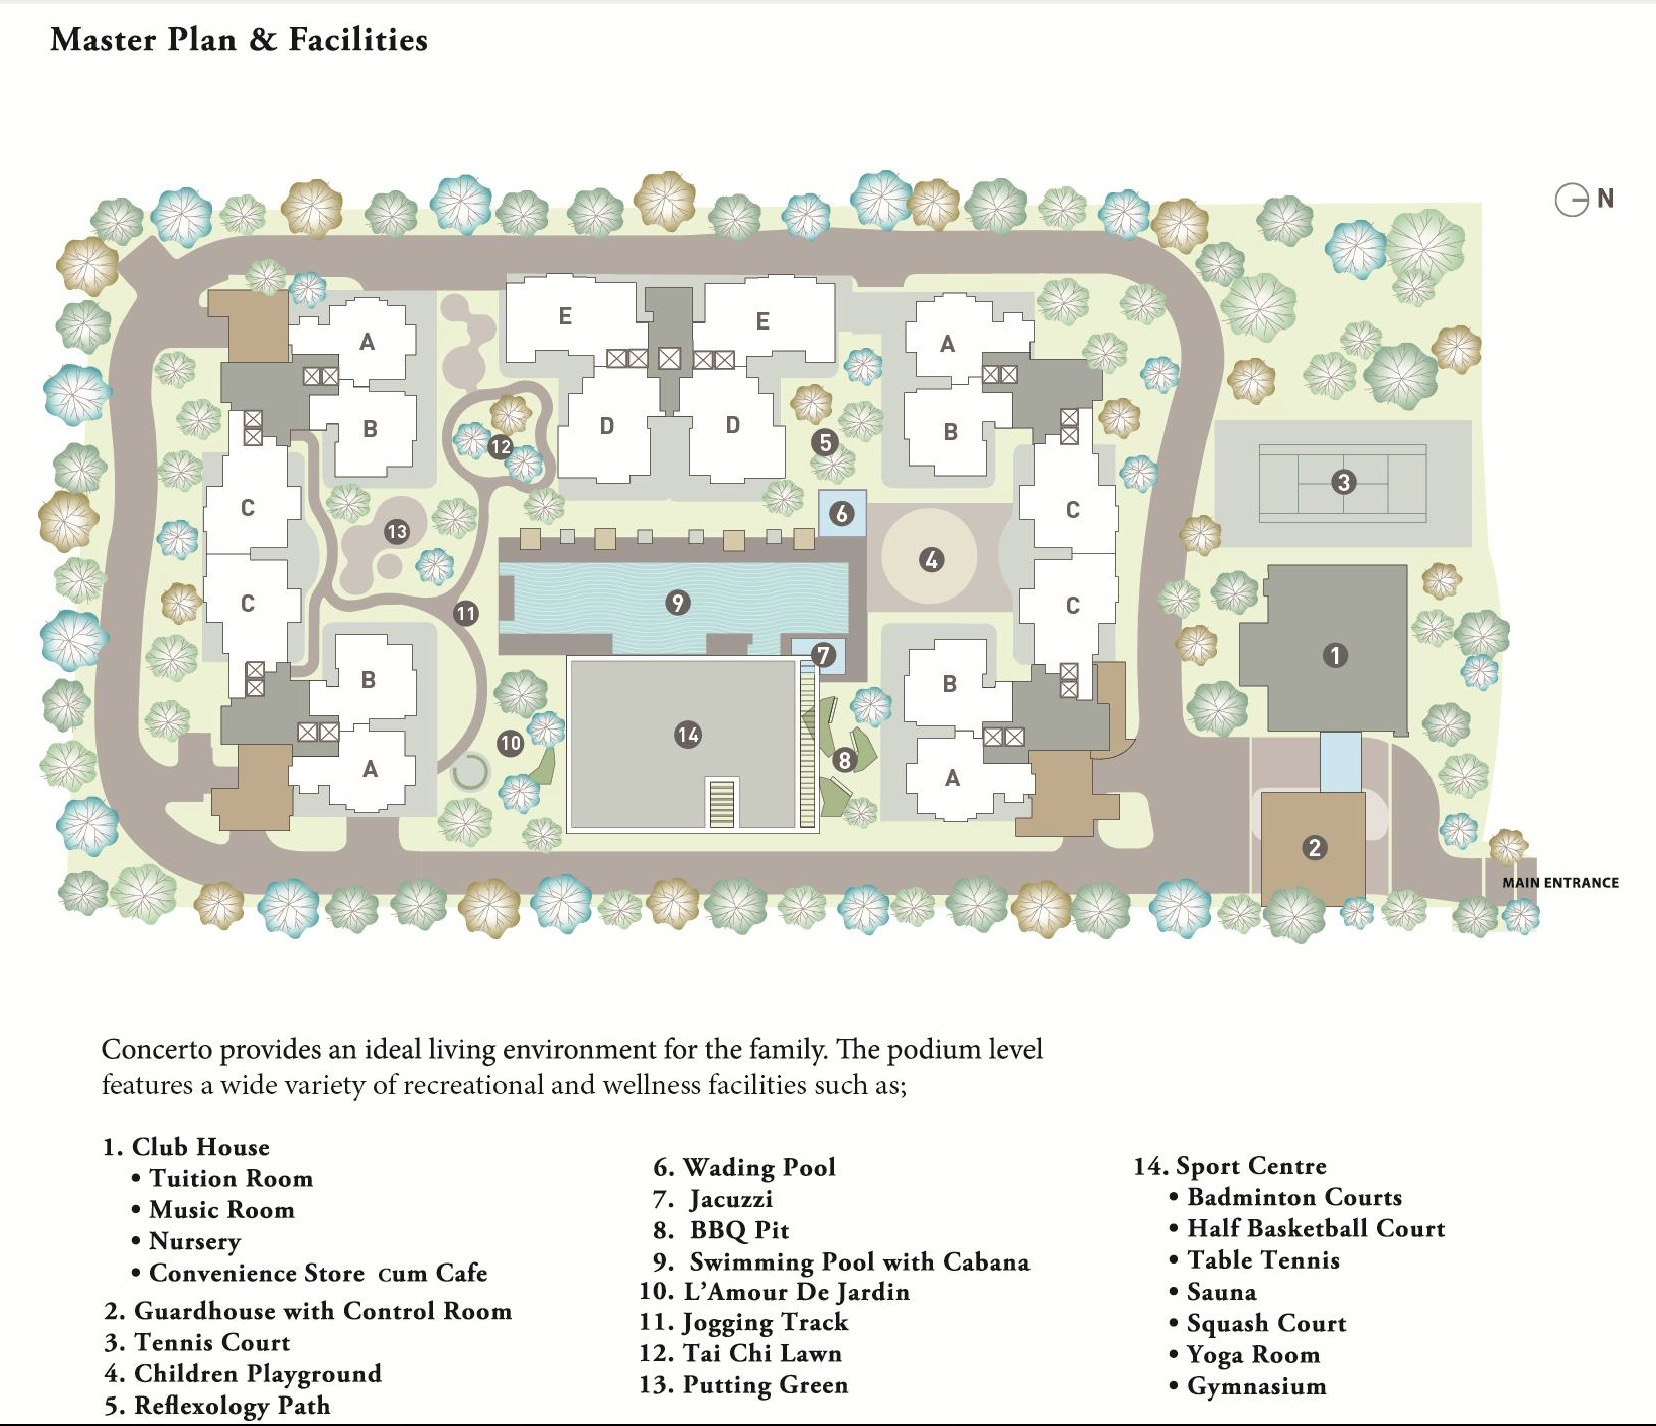 Site Plan of Concerto Kiara